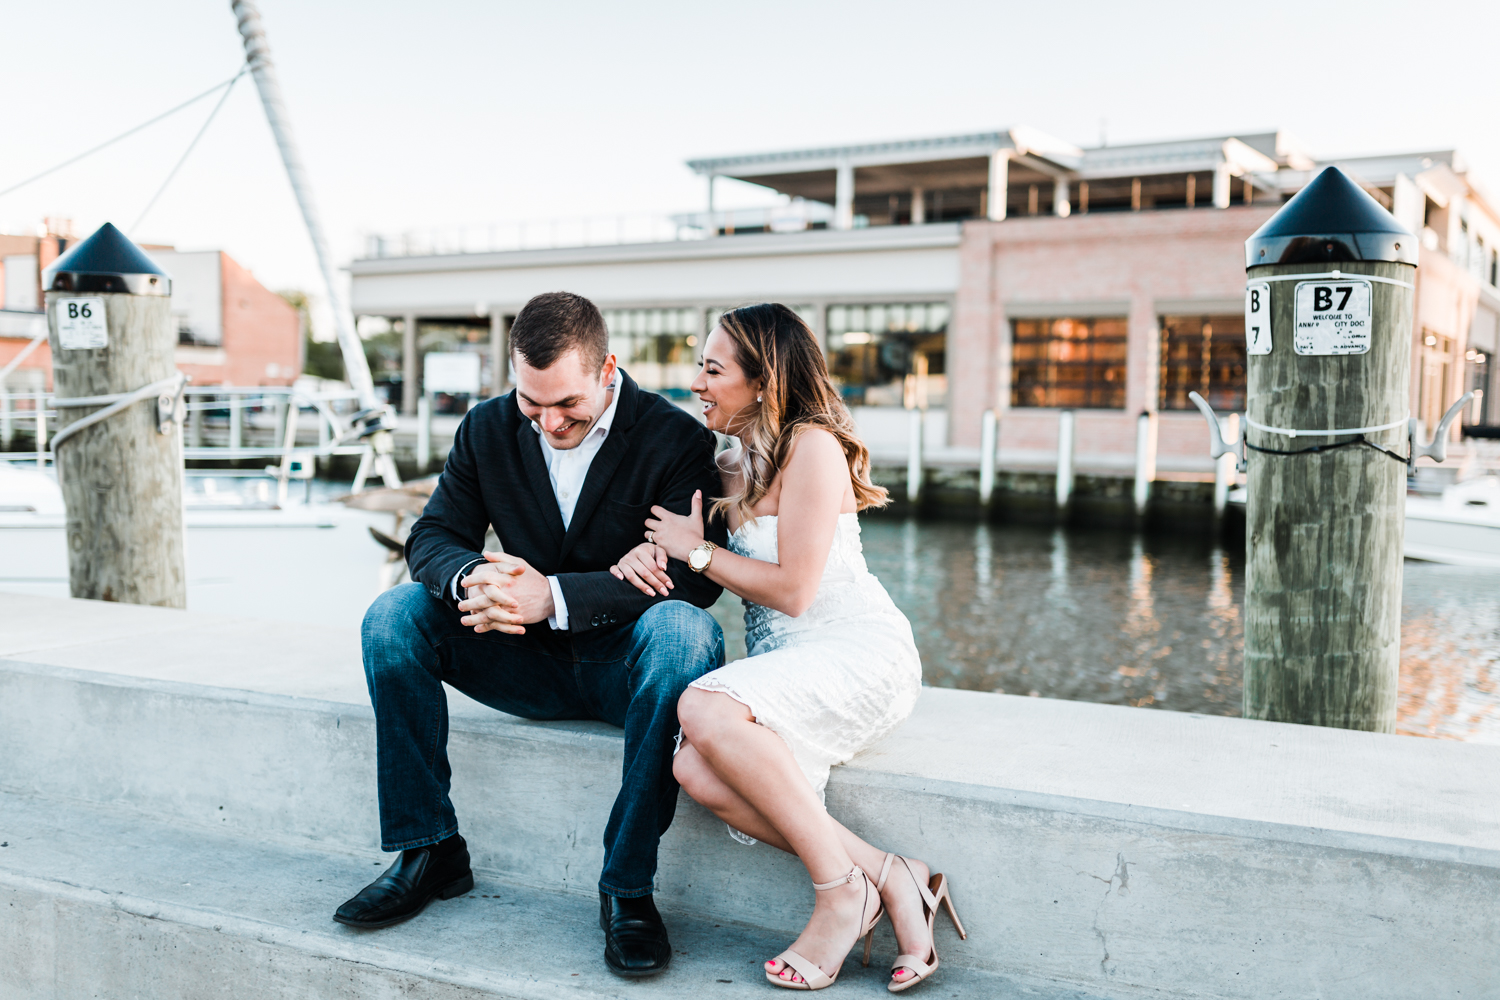 Couple laughing near boats in Downtown Annapolis - engagement session with boats and ships in Maryland